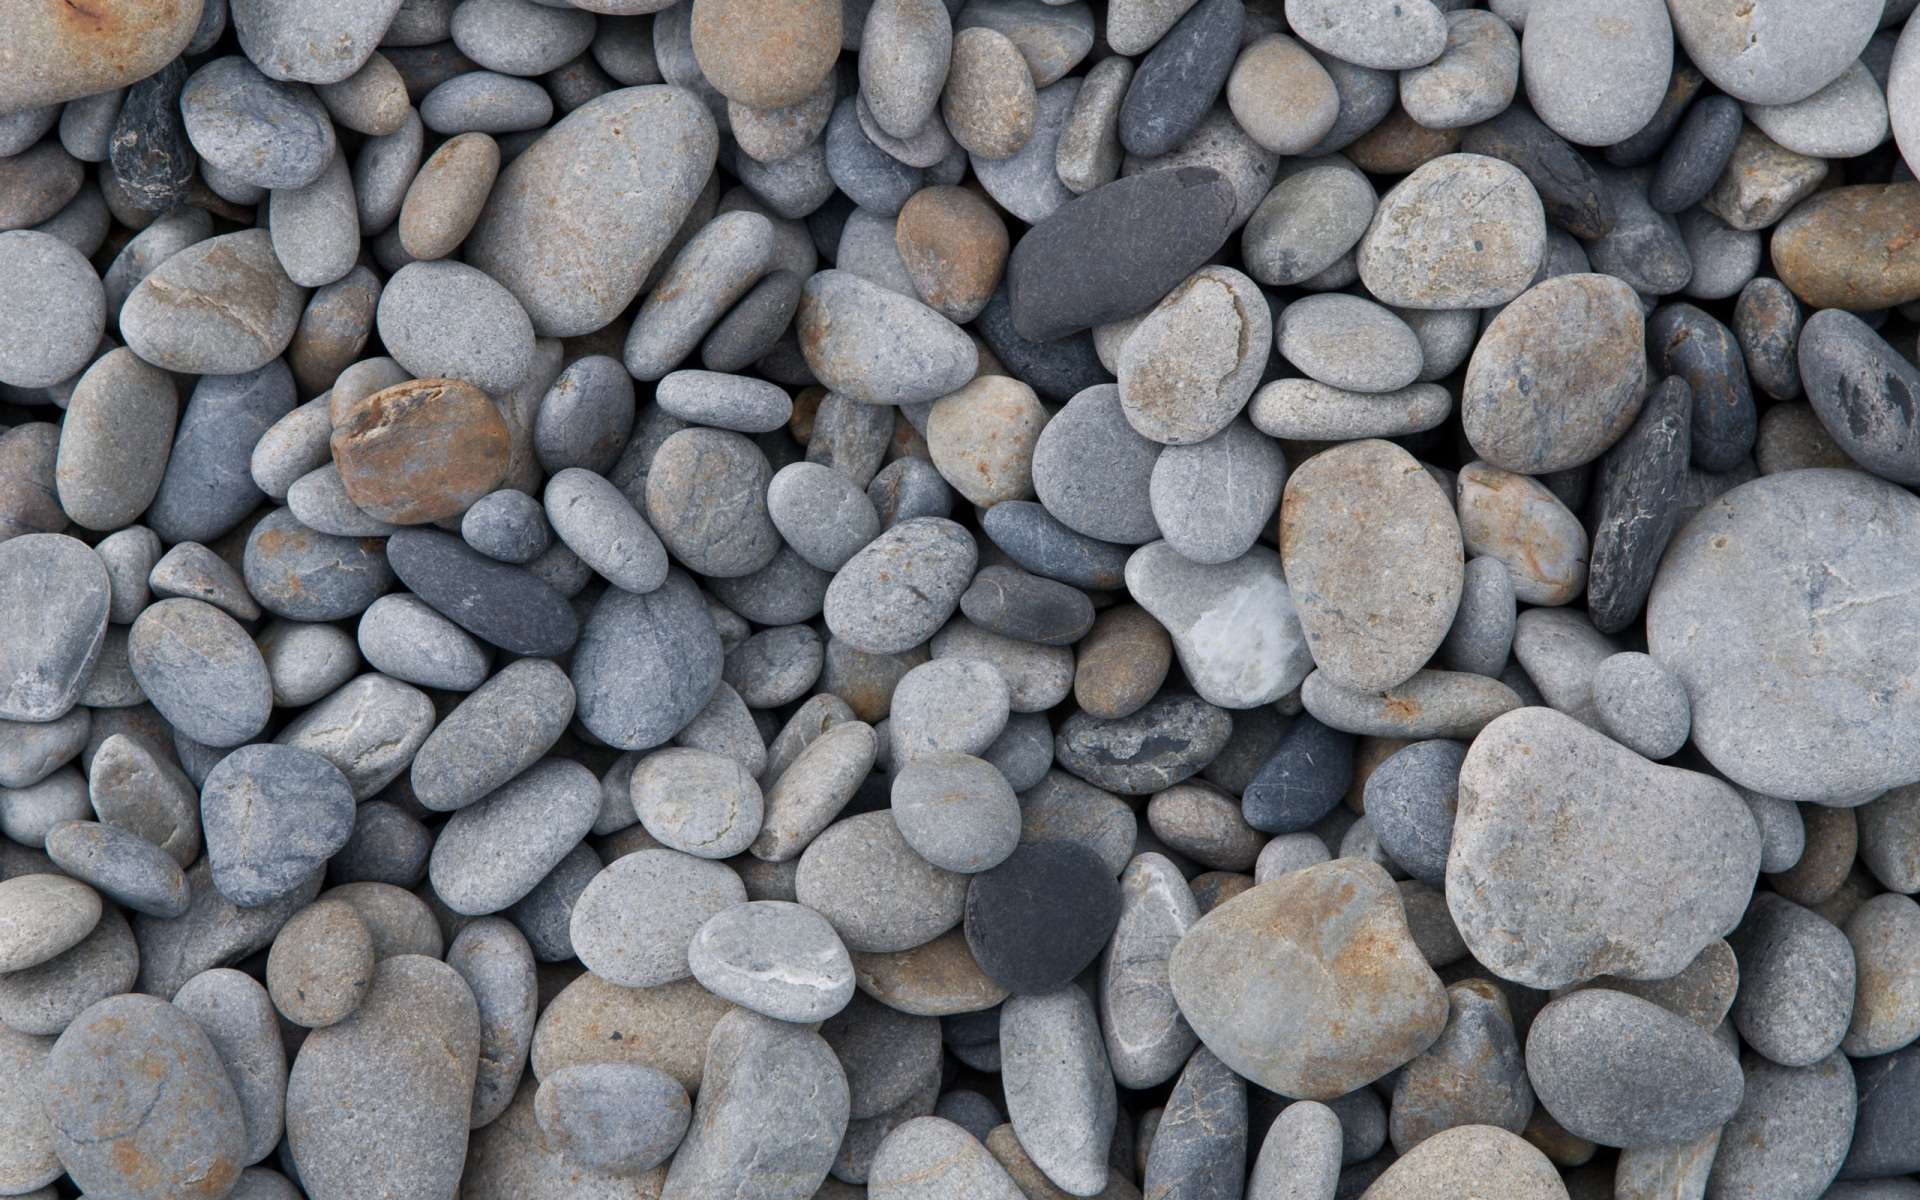 Pebbles Wallpapers, Pictures, Images